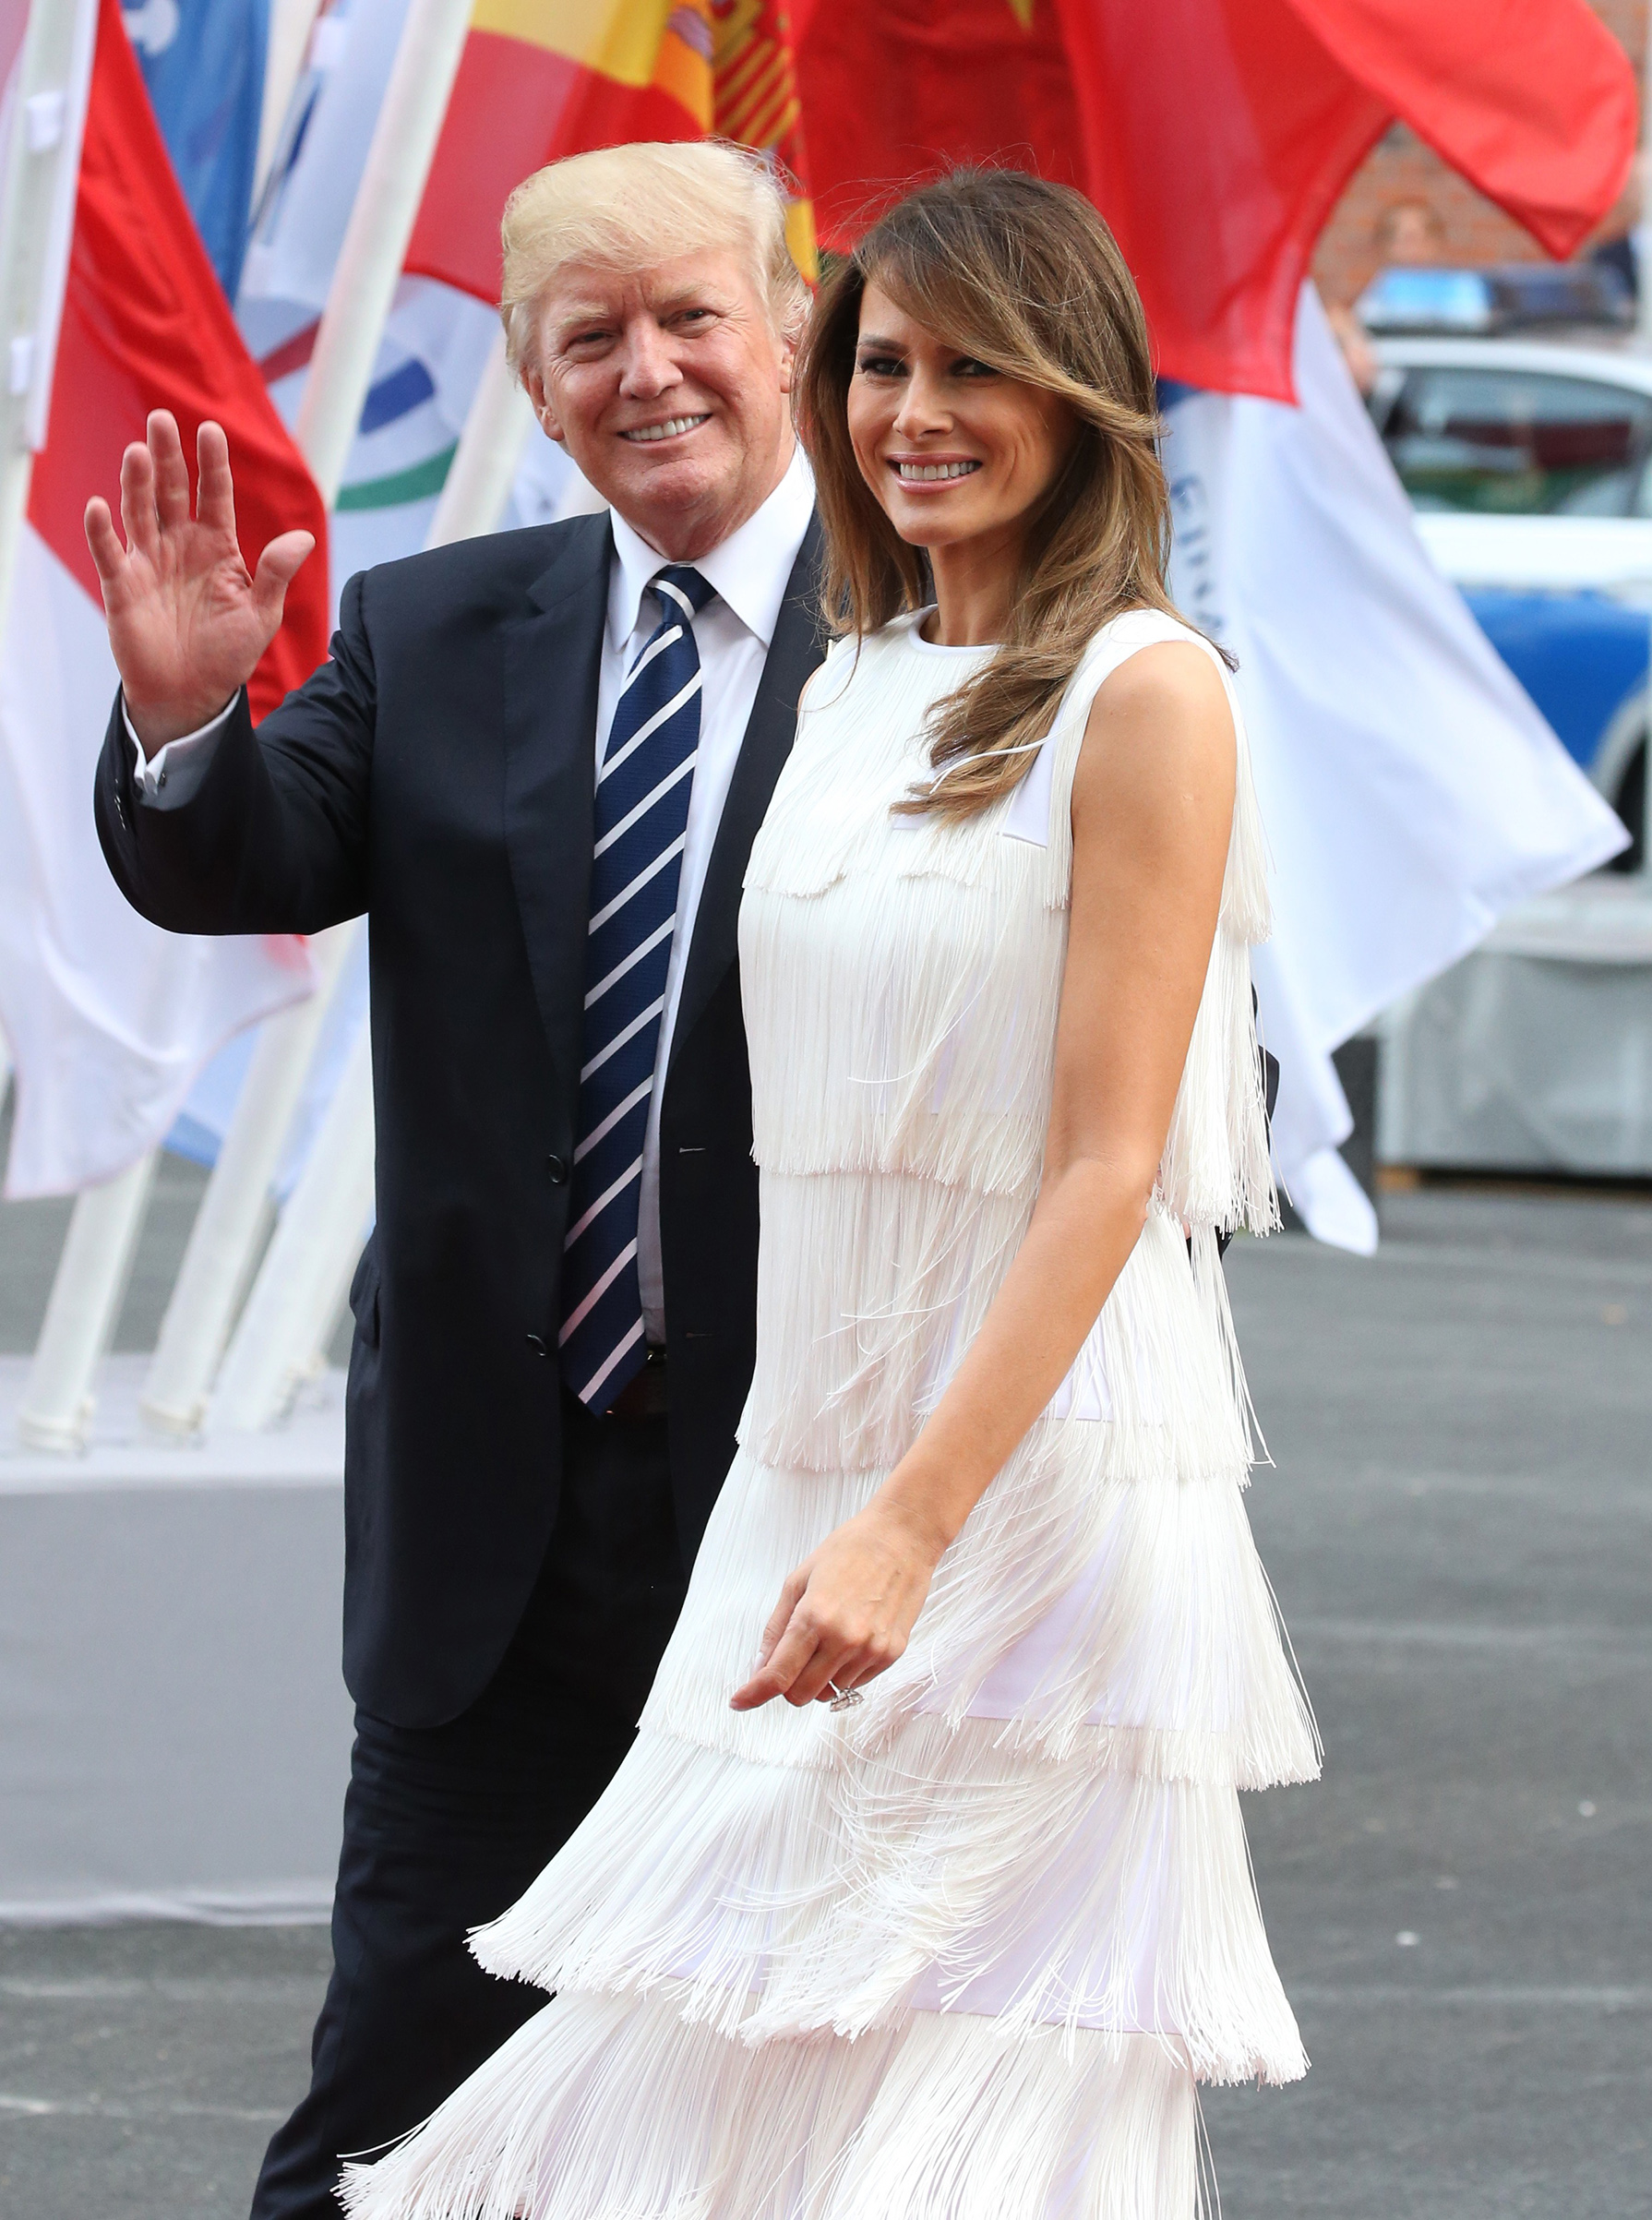 President Donald Trump (L) and first lady Melania Trump (R) wearing a Michael Kors Collection flapper style dress, arrive to the Elbphilharmonie for the dinner during the G20 Summit on July,7, 2017 in Hamburg, Germany.